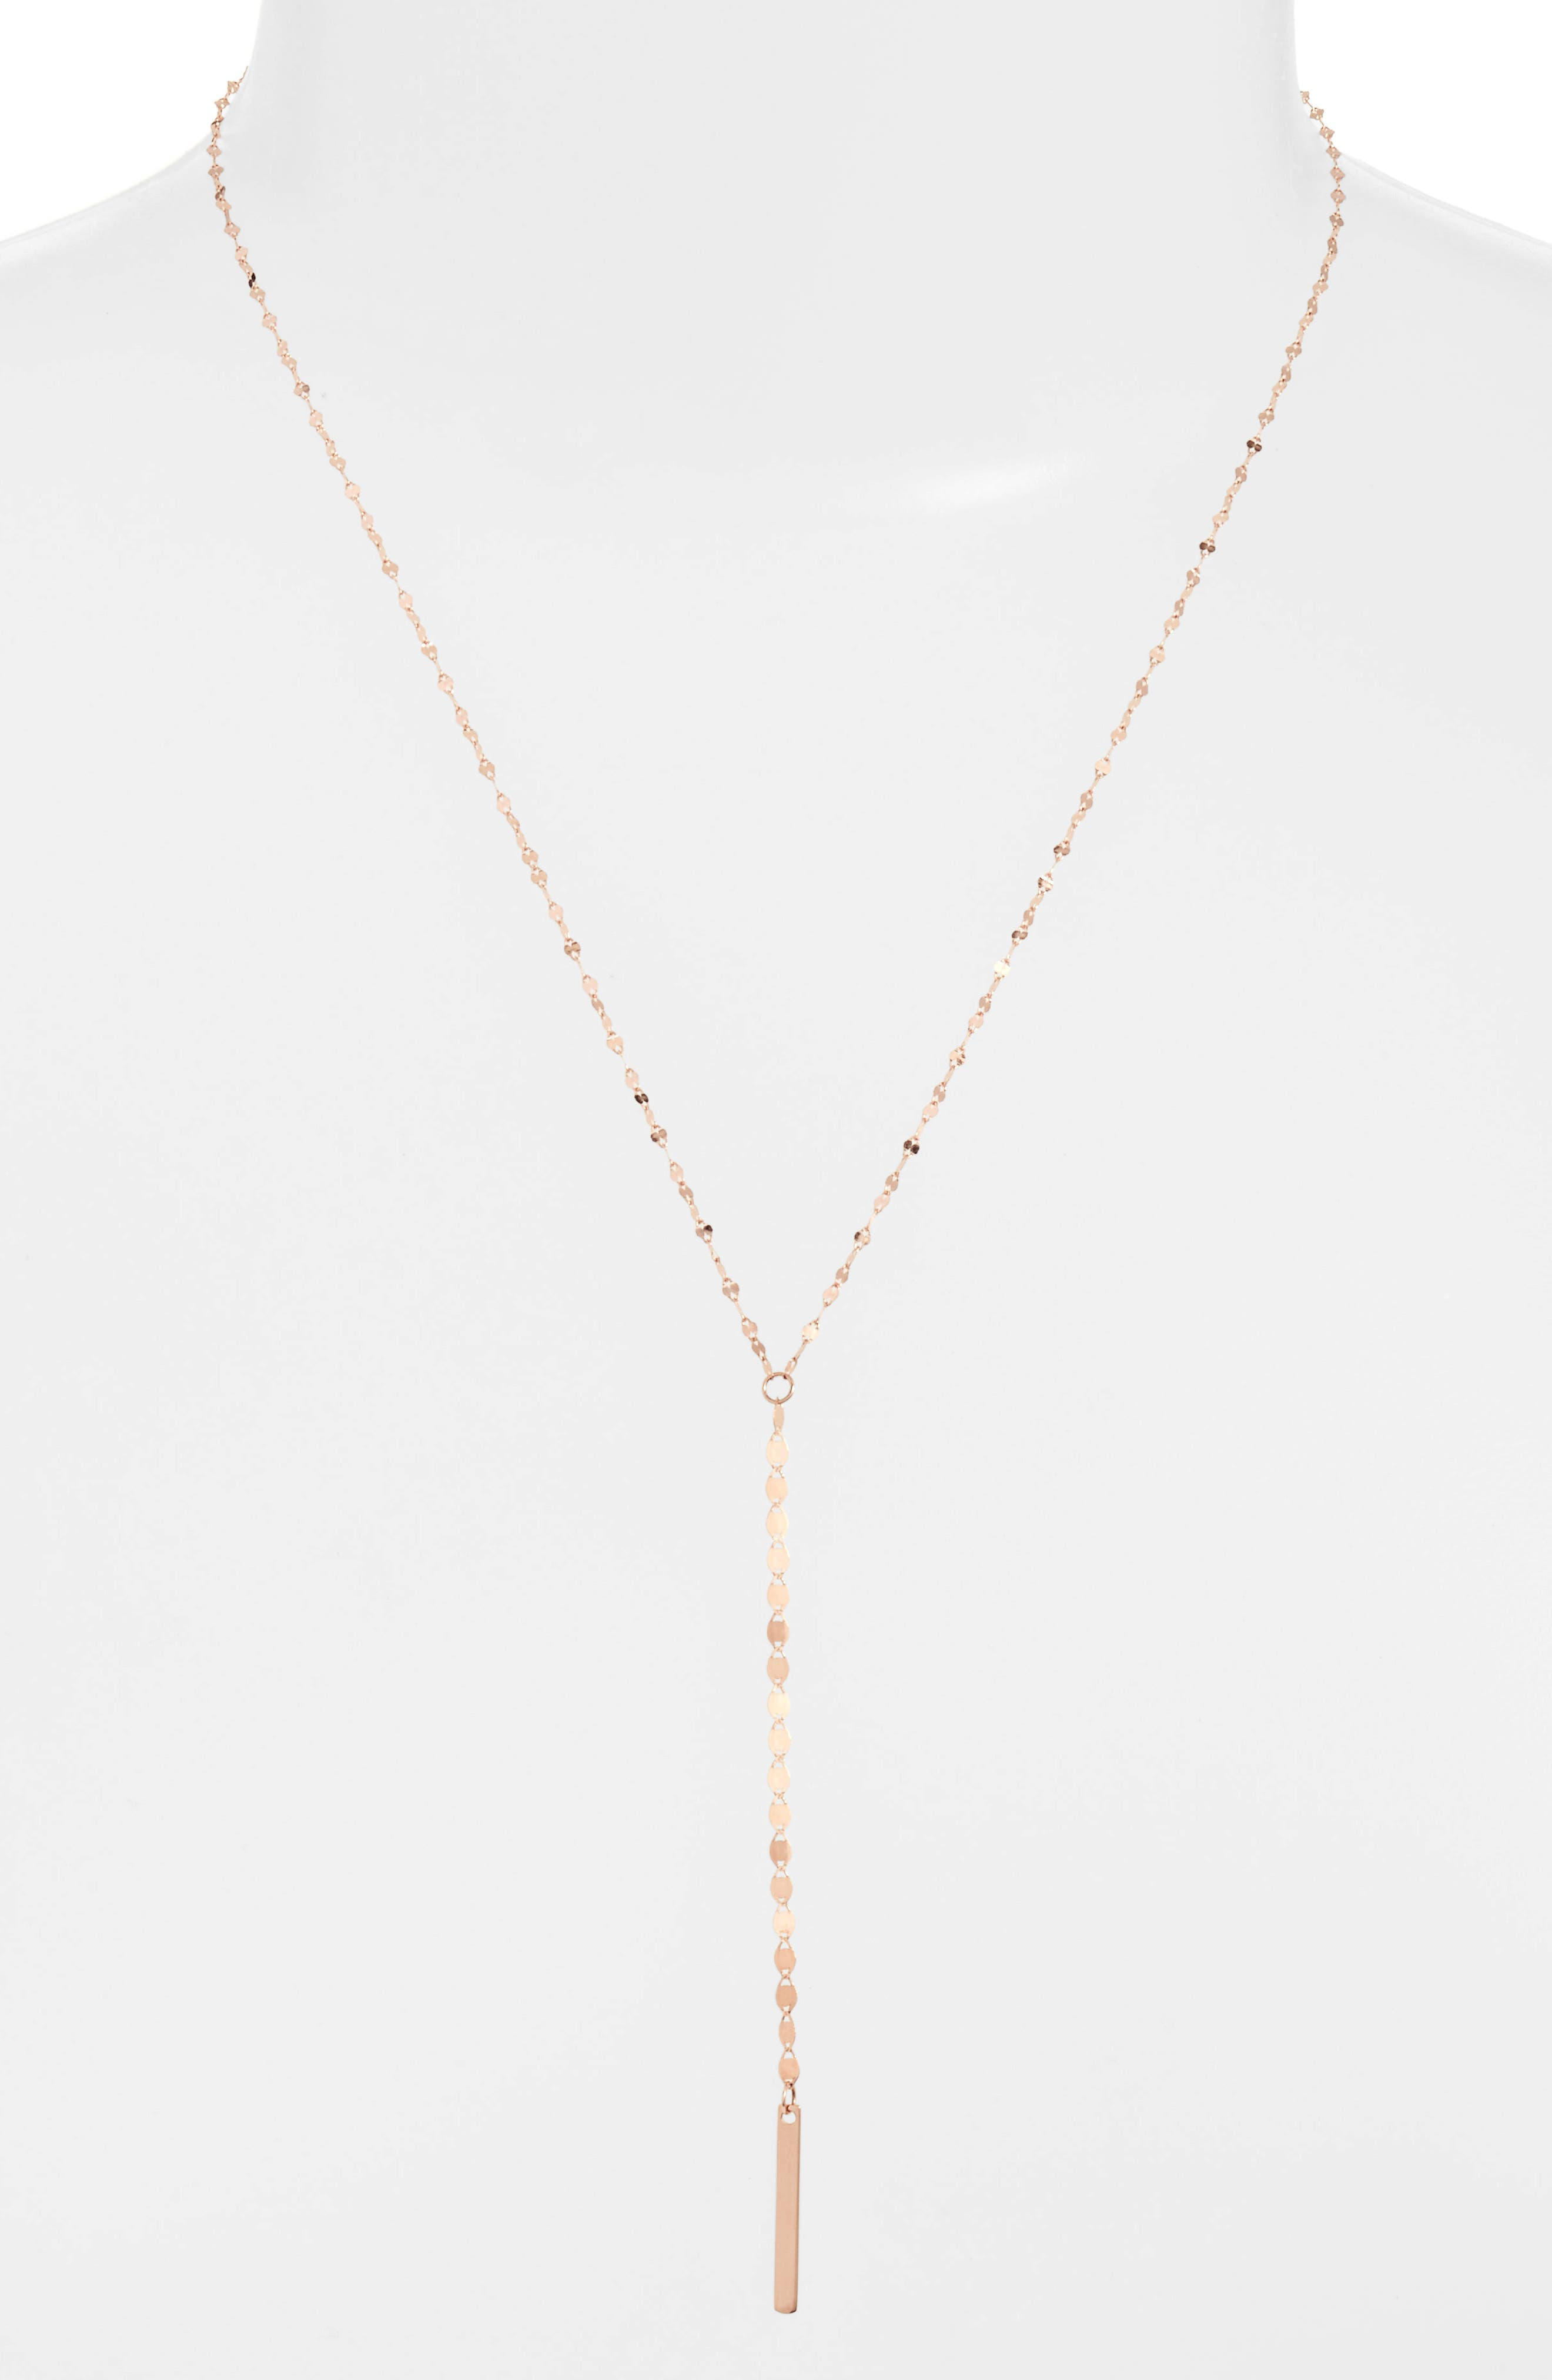 Main Image - Lana Jewelry Nude Remix Bar Y-Necklace